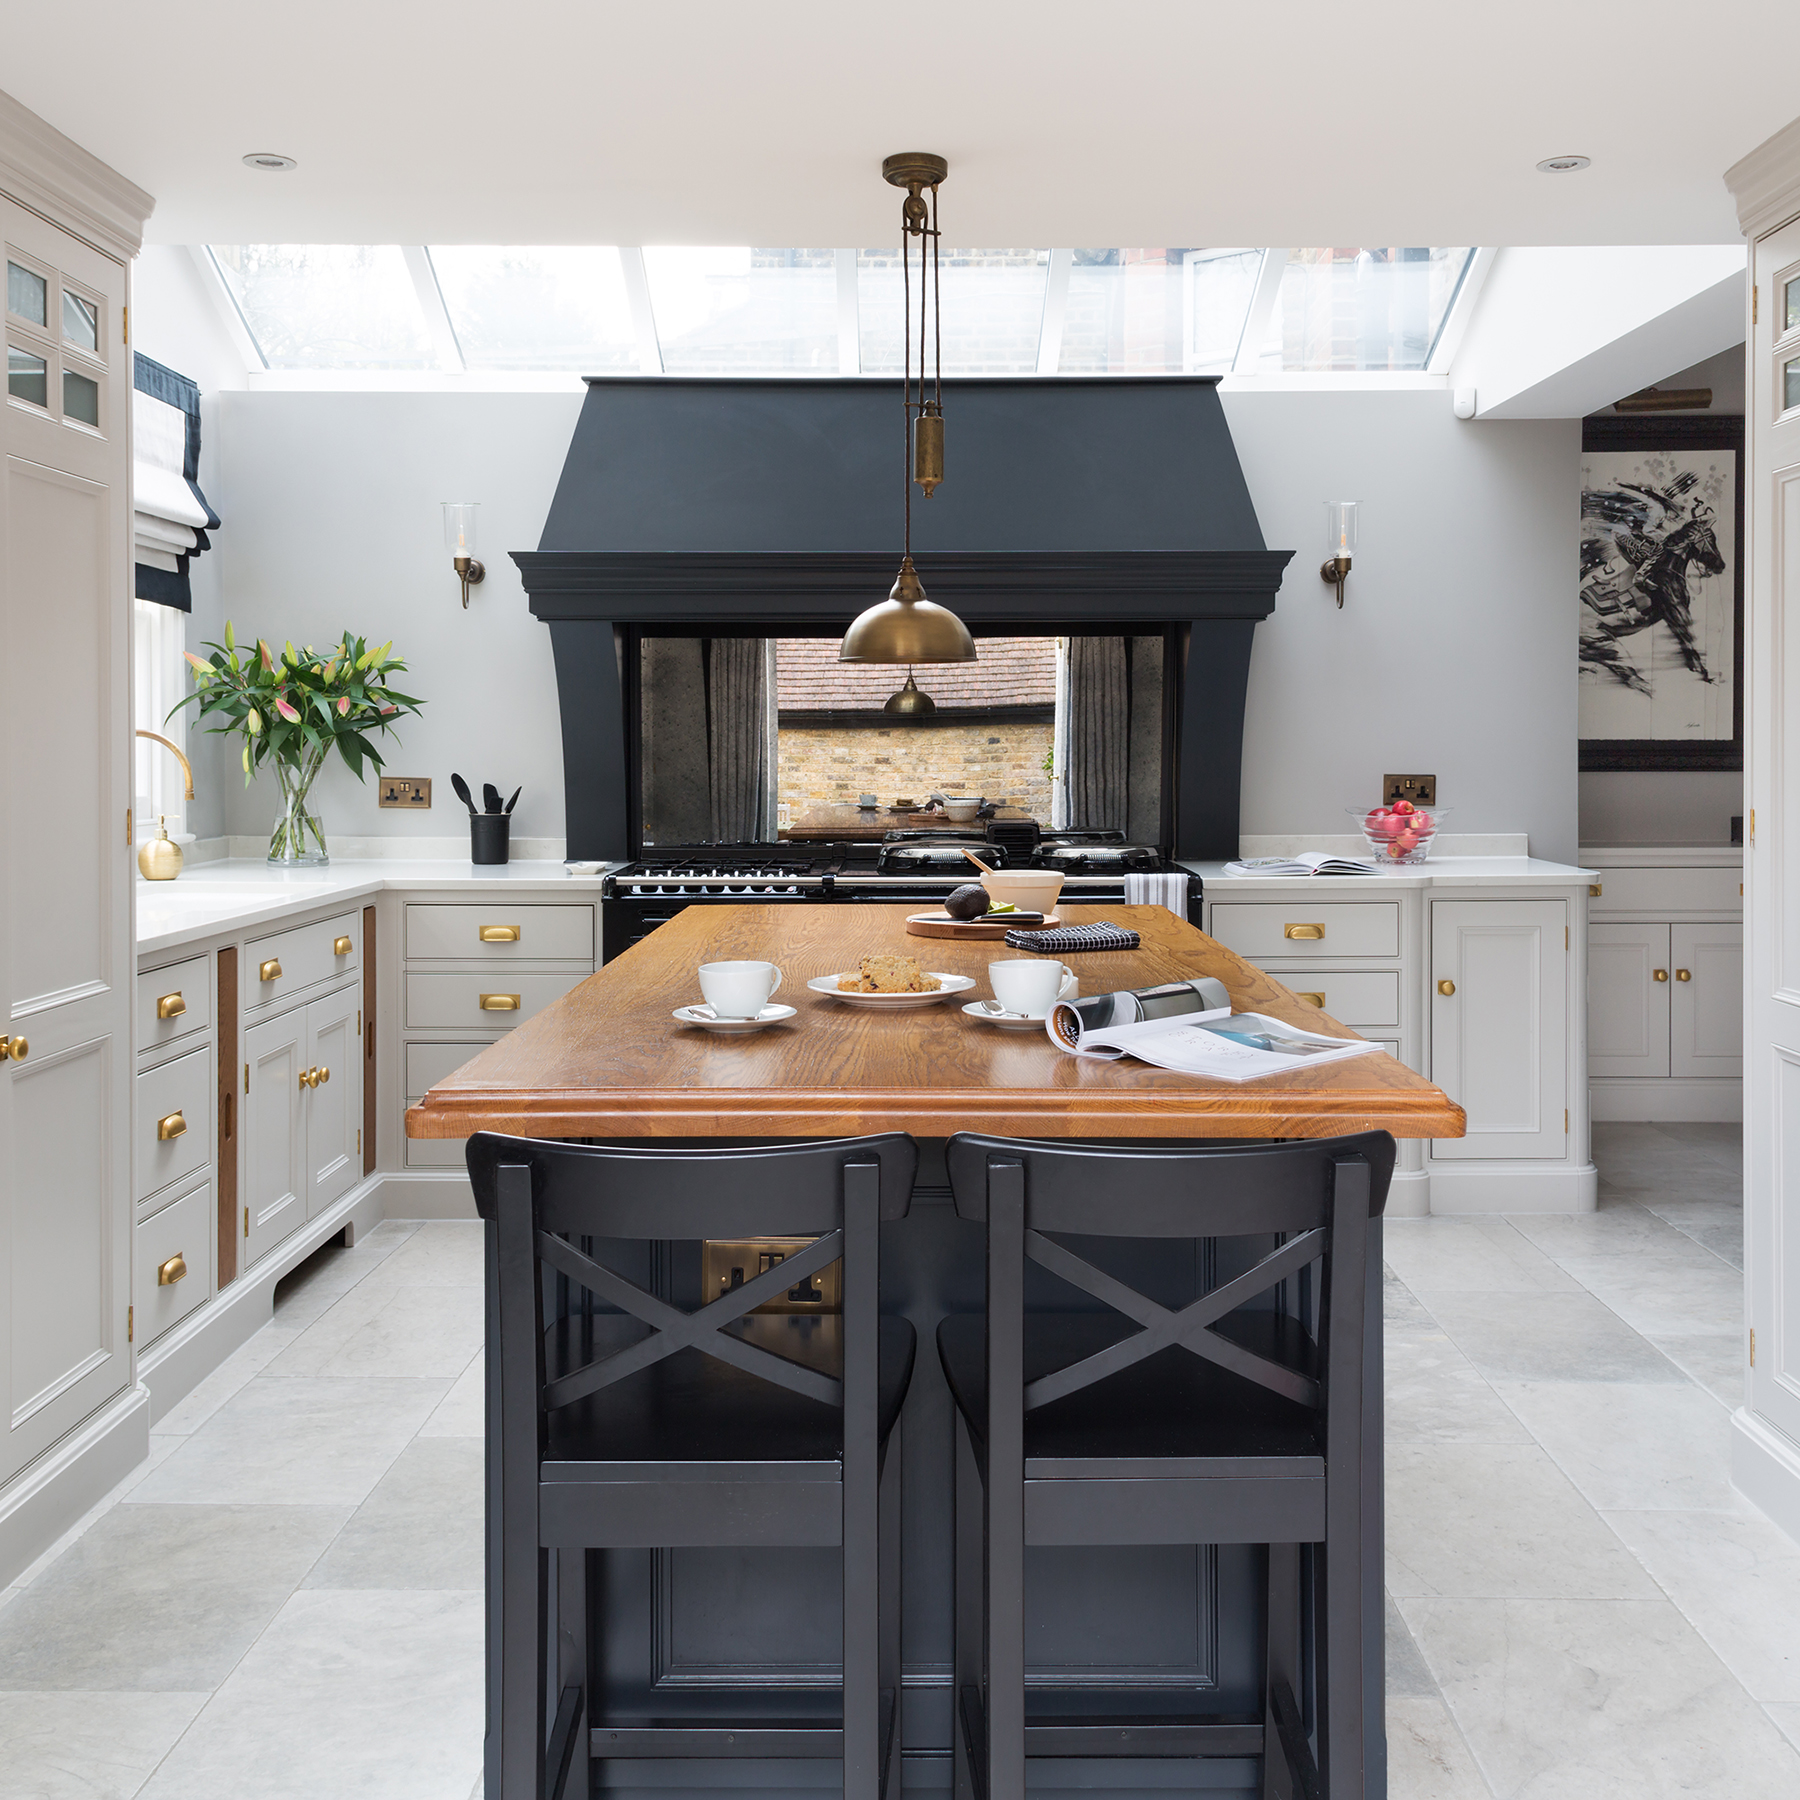 bespoke london kitchen blackheath